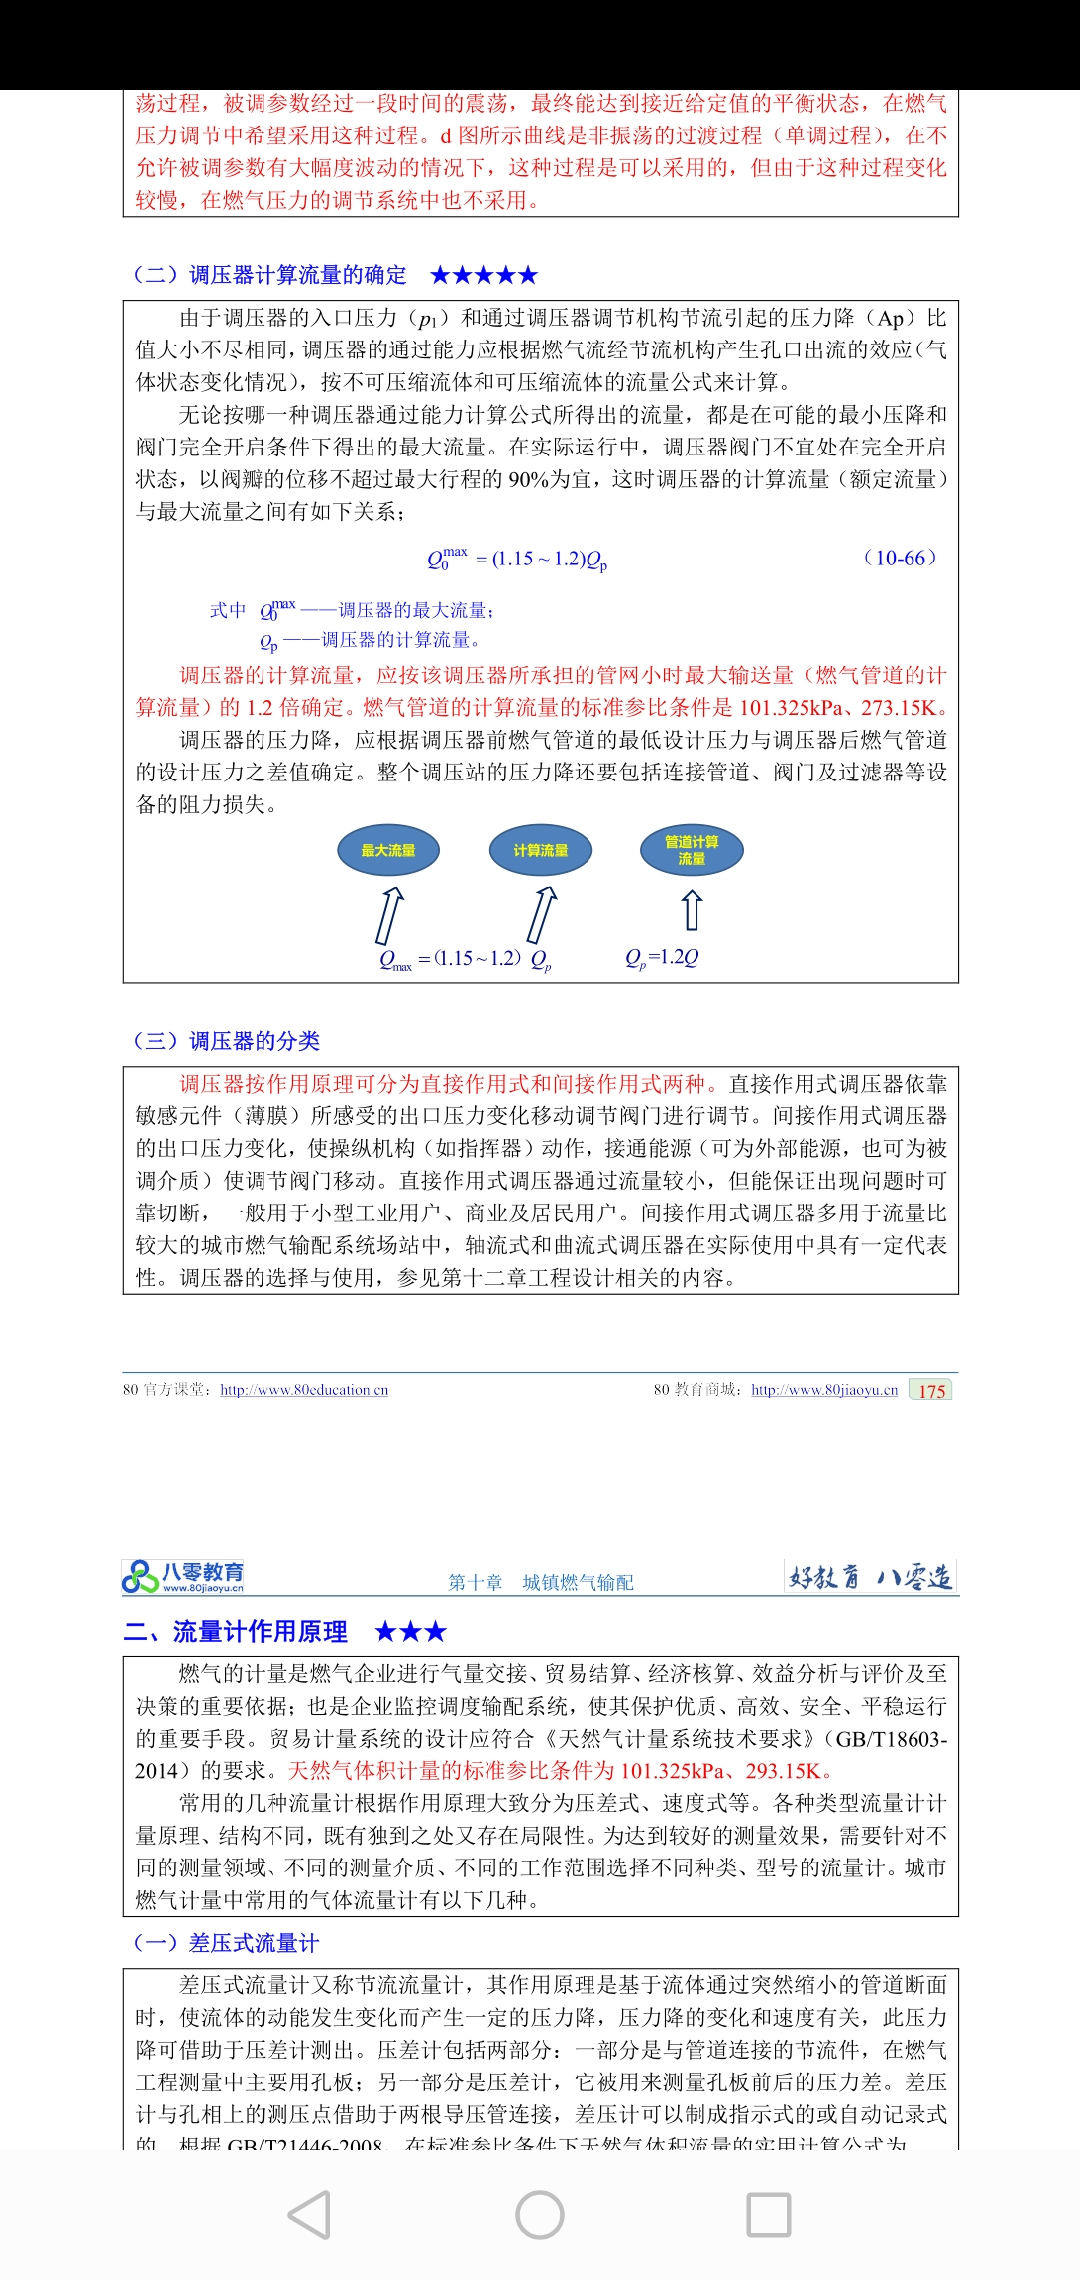 Screenshot_20190920_013931_com.tencent.mobileqq.jpg